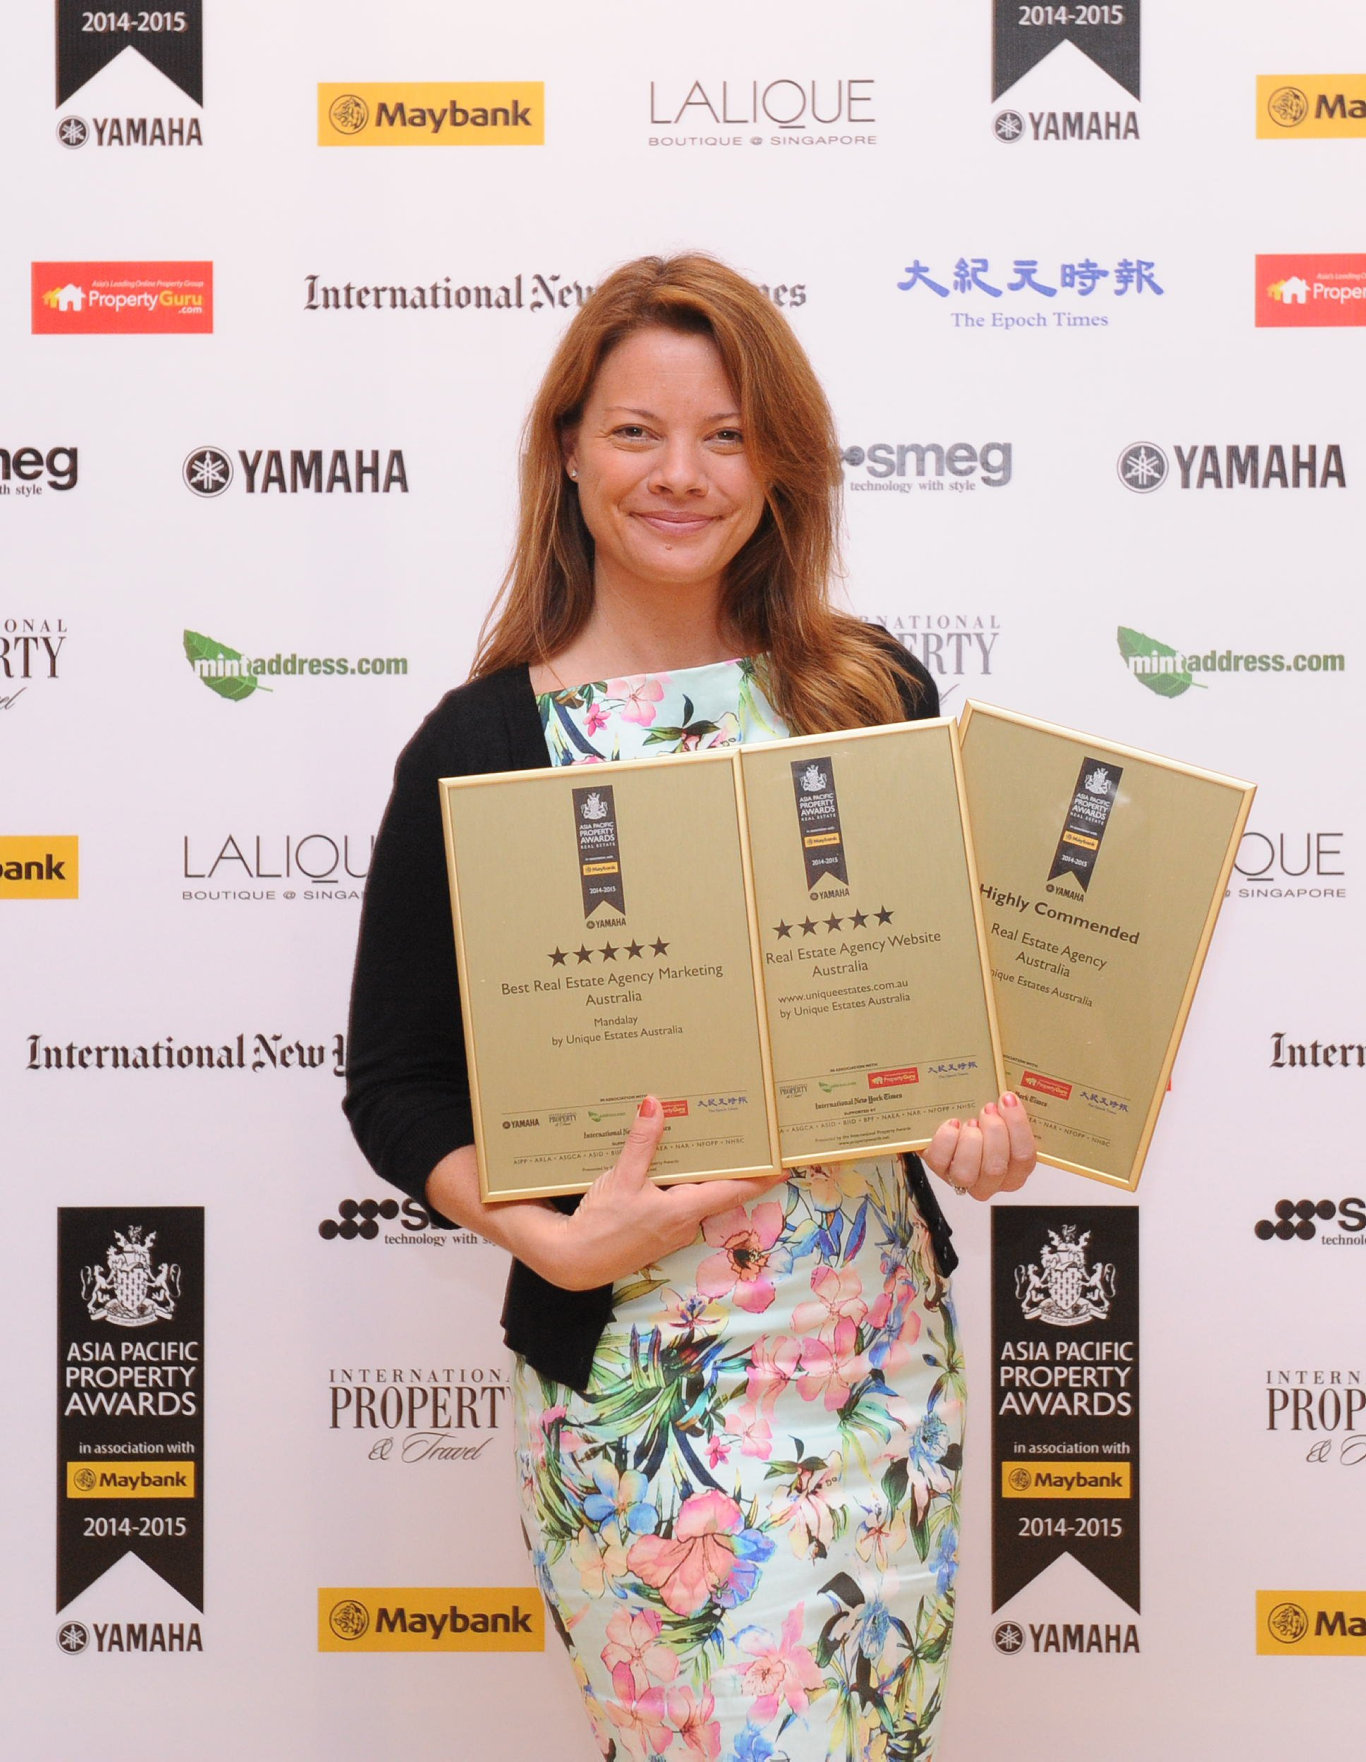 Unique Estates Company Director Nicolette van Wijngaarden received awards for best real estate agency marketing in Australia and best real estate agency website in Australia at the prestigious Asia Pacific Property Awards in Kuala Lumpur. Photo Contributed